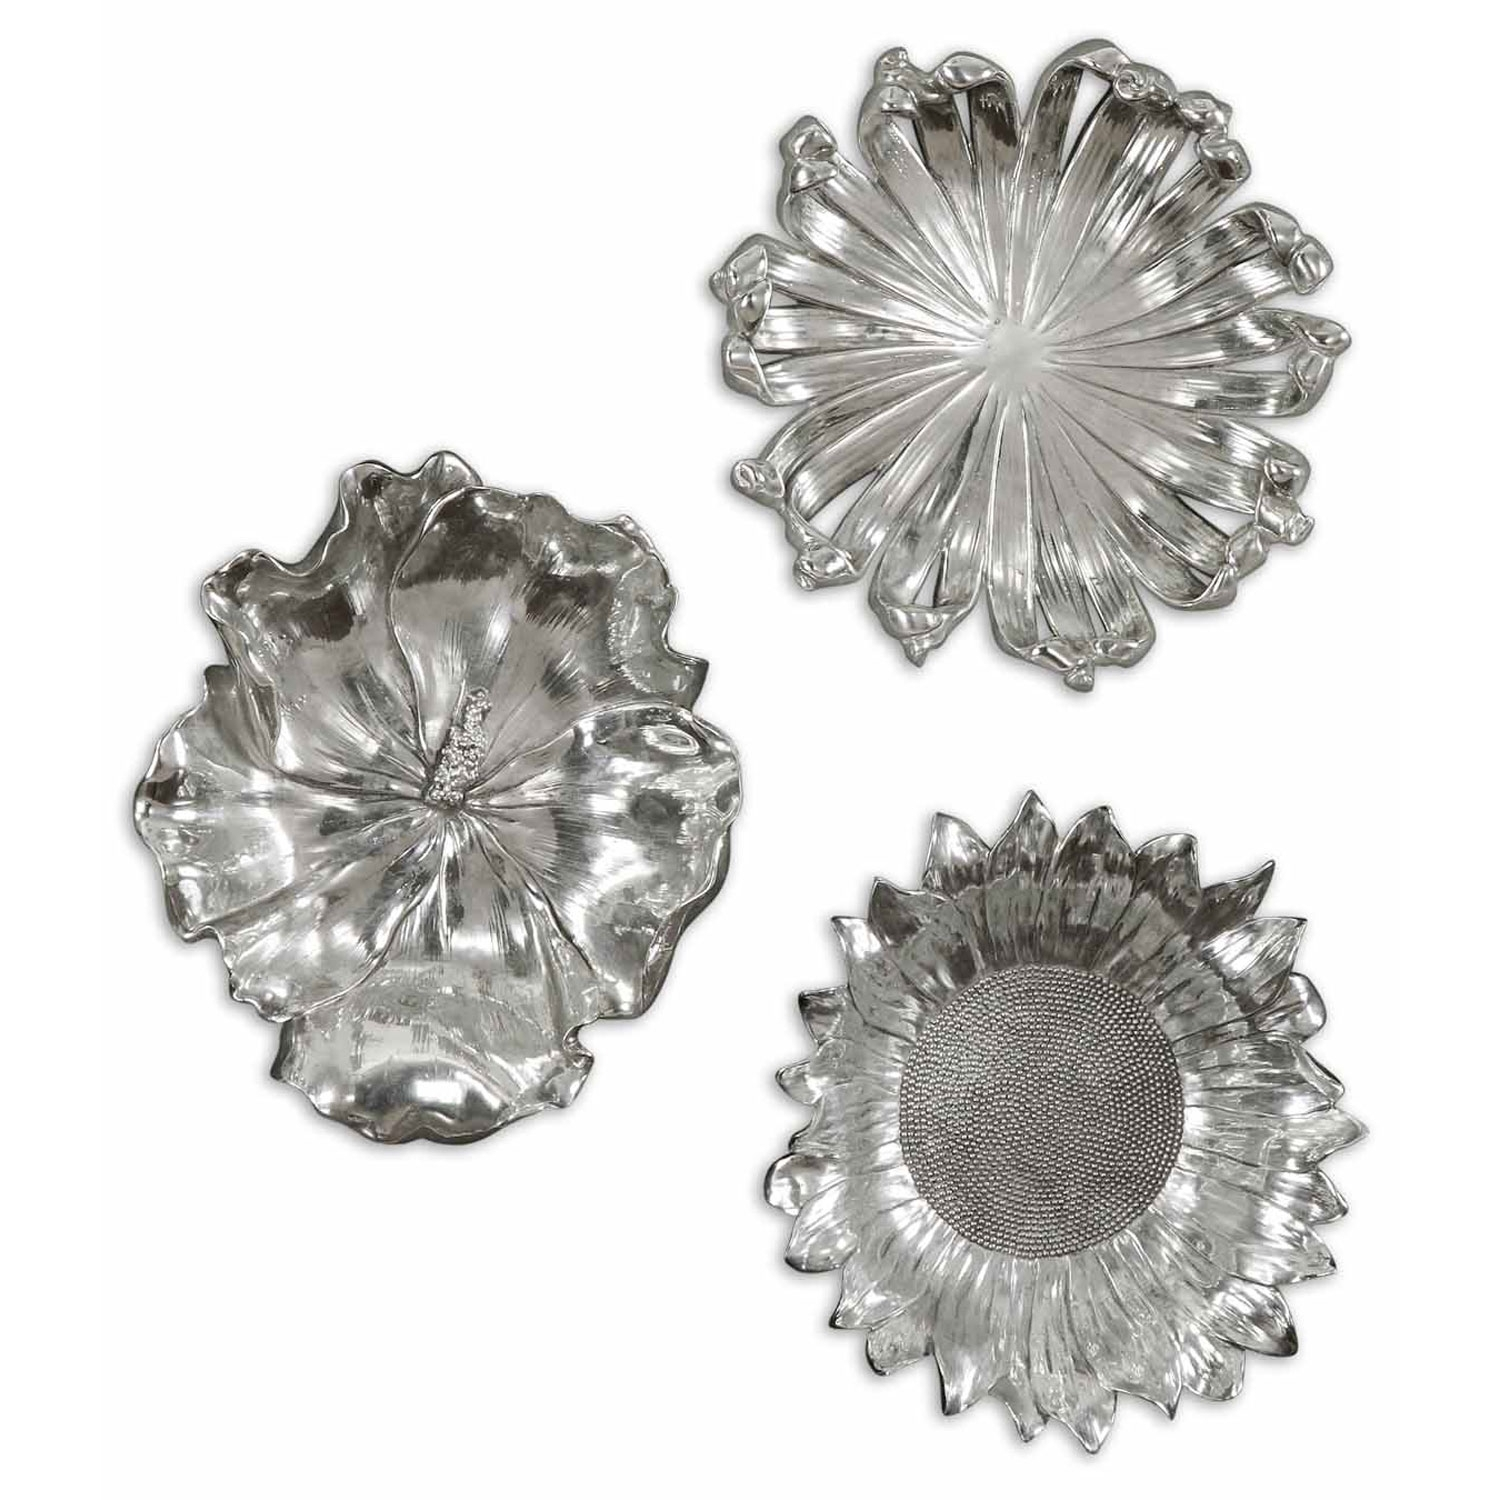 Uttermost Silver Flowers Metal Wall Art, Set Of Three 08503 | Bellacor Inside Most Up To Date Metal Flower Wall Art (View 9 of 15)